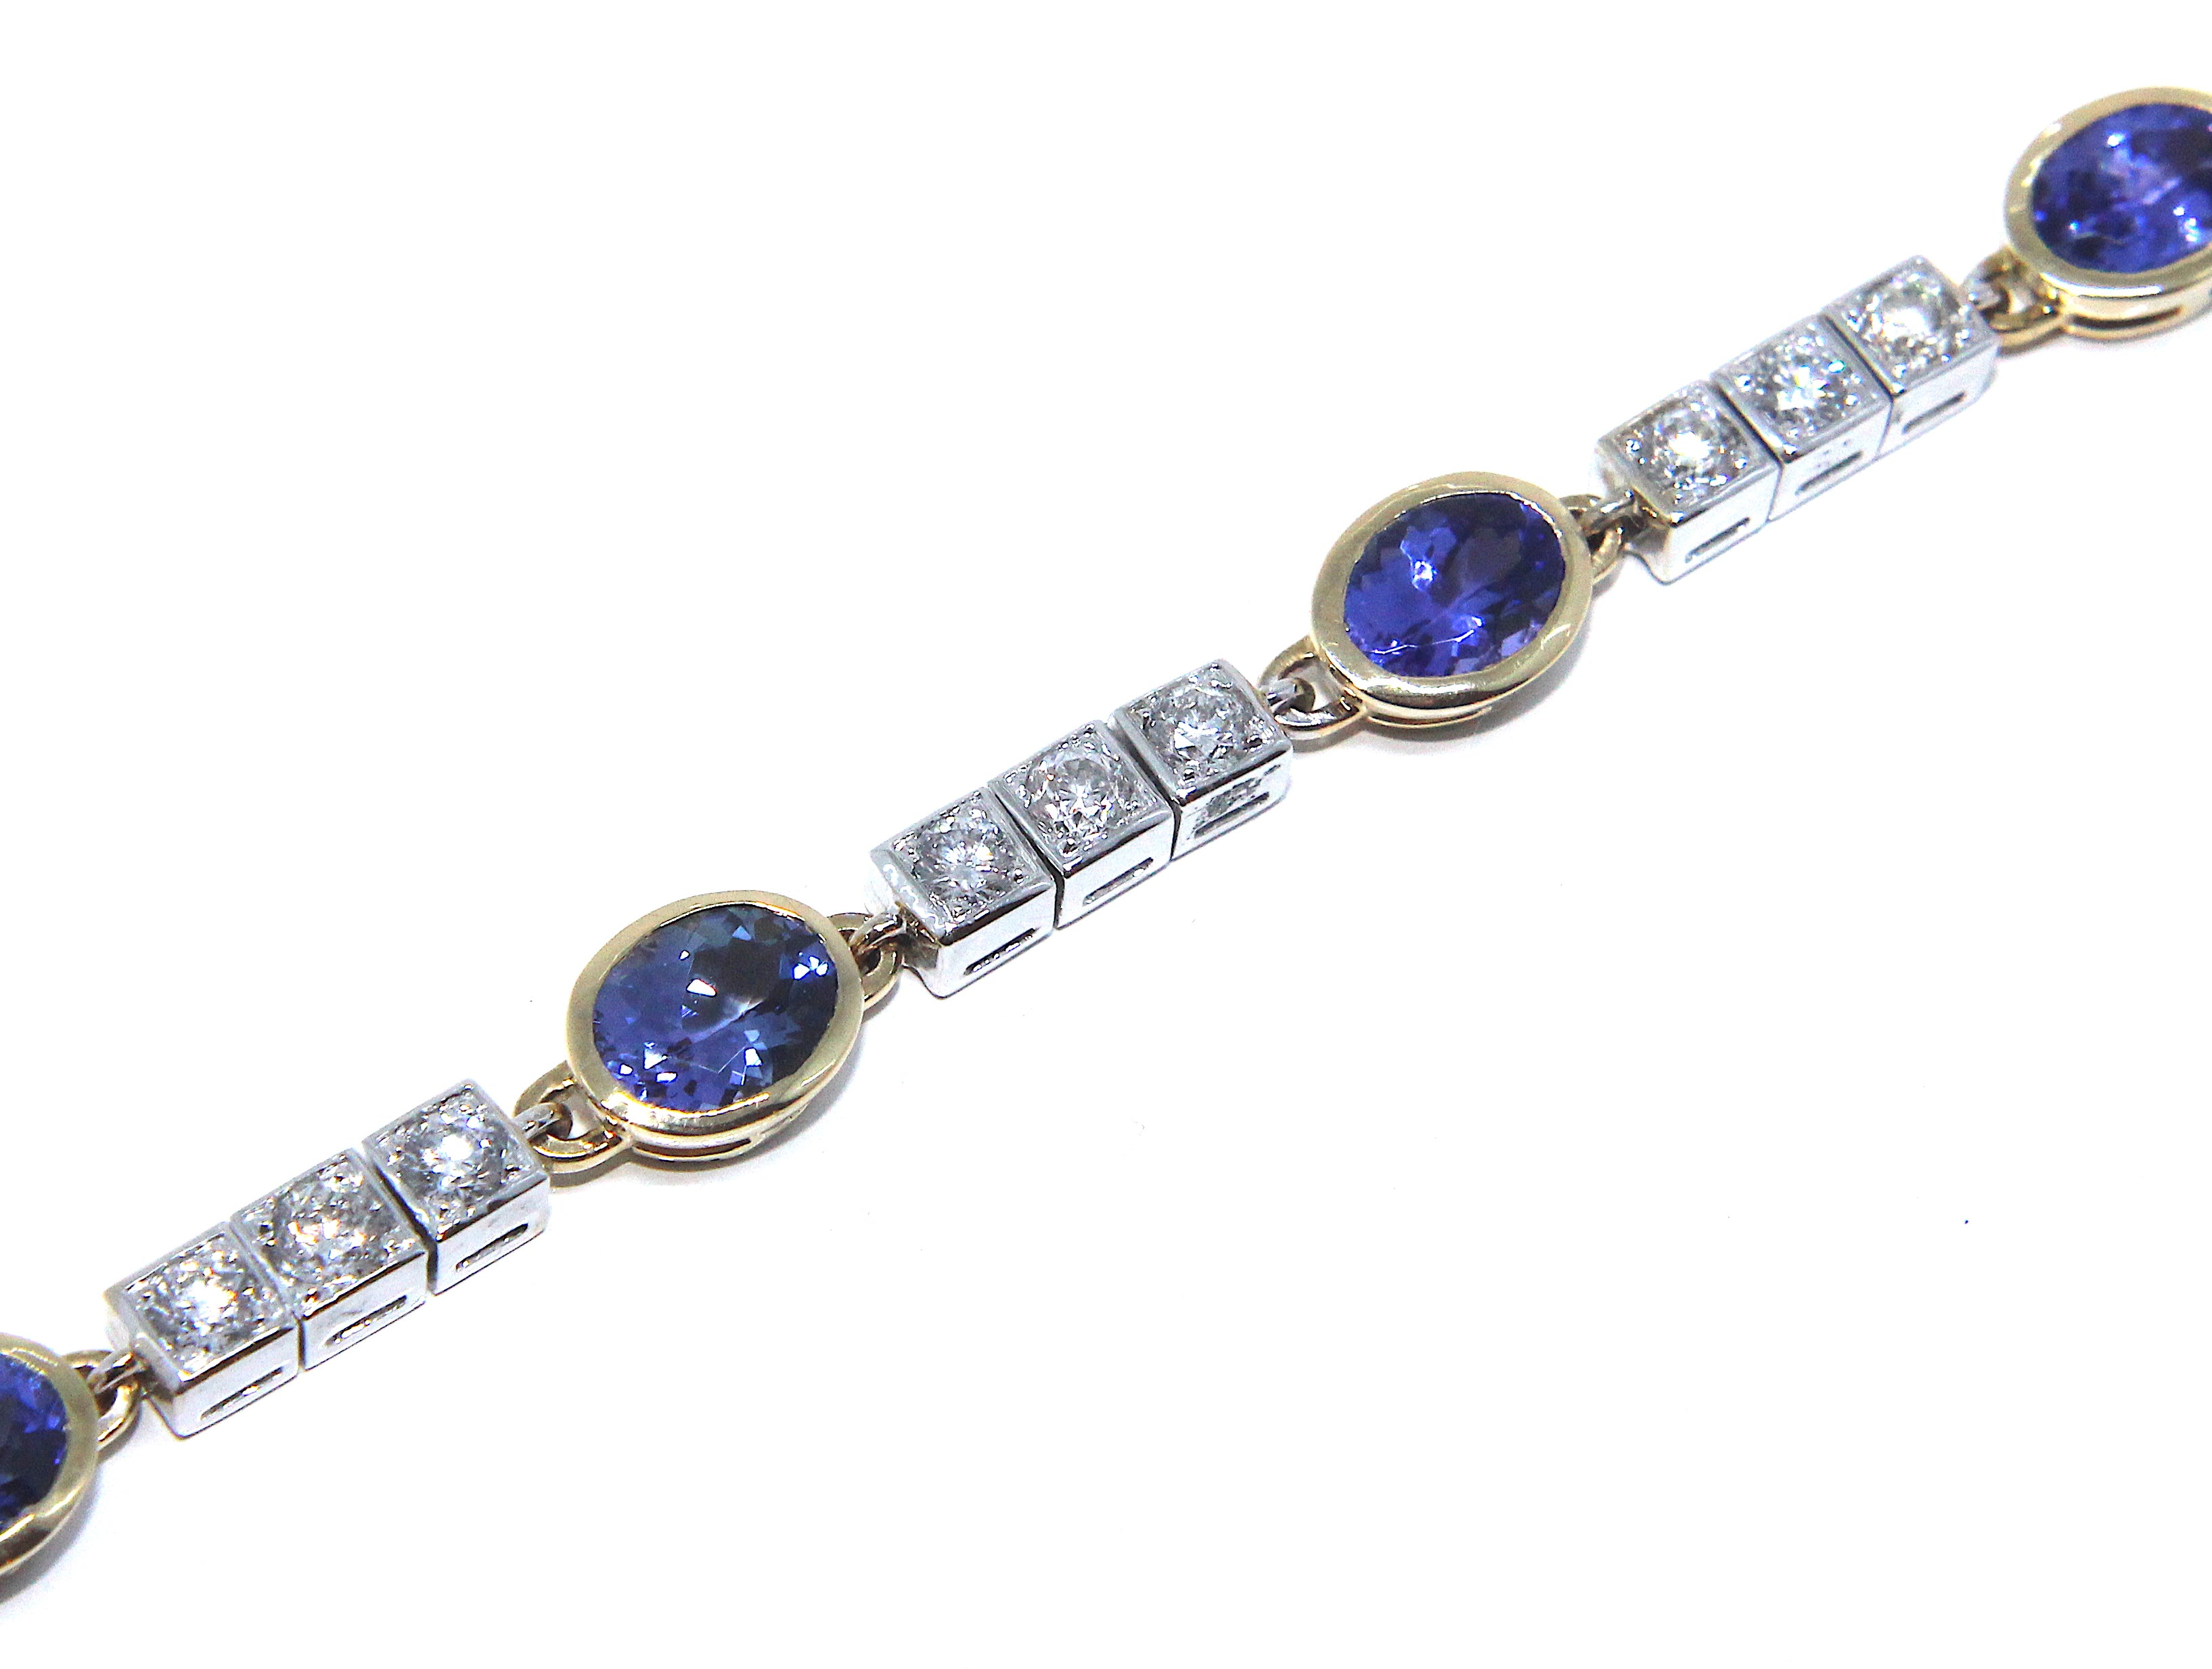 tanzanite rose gold and pinterest jewelry pin dezso bracelet